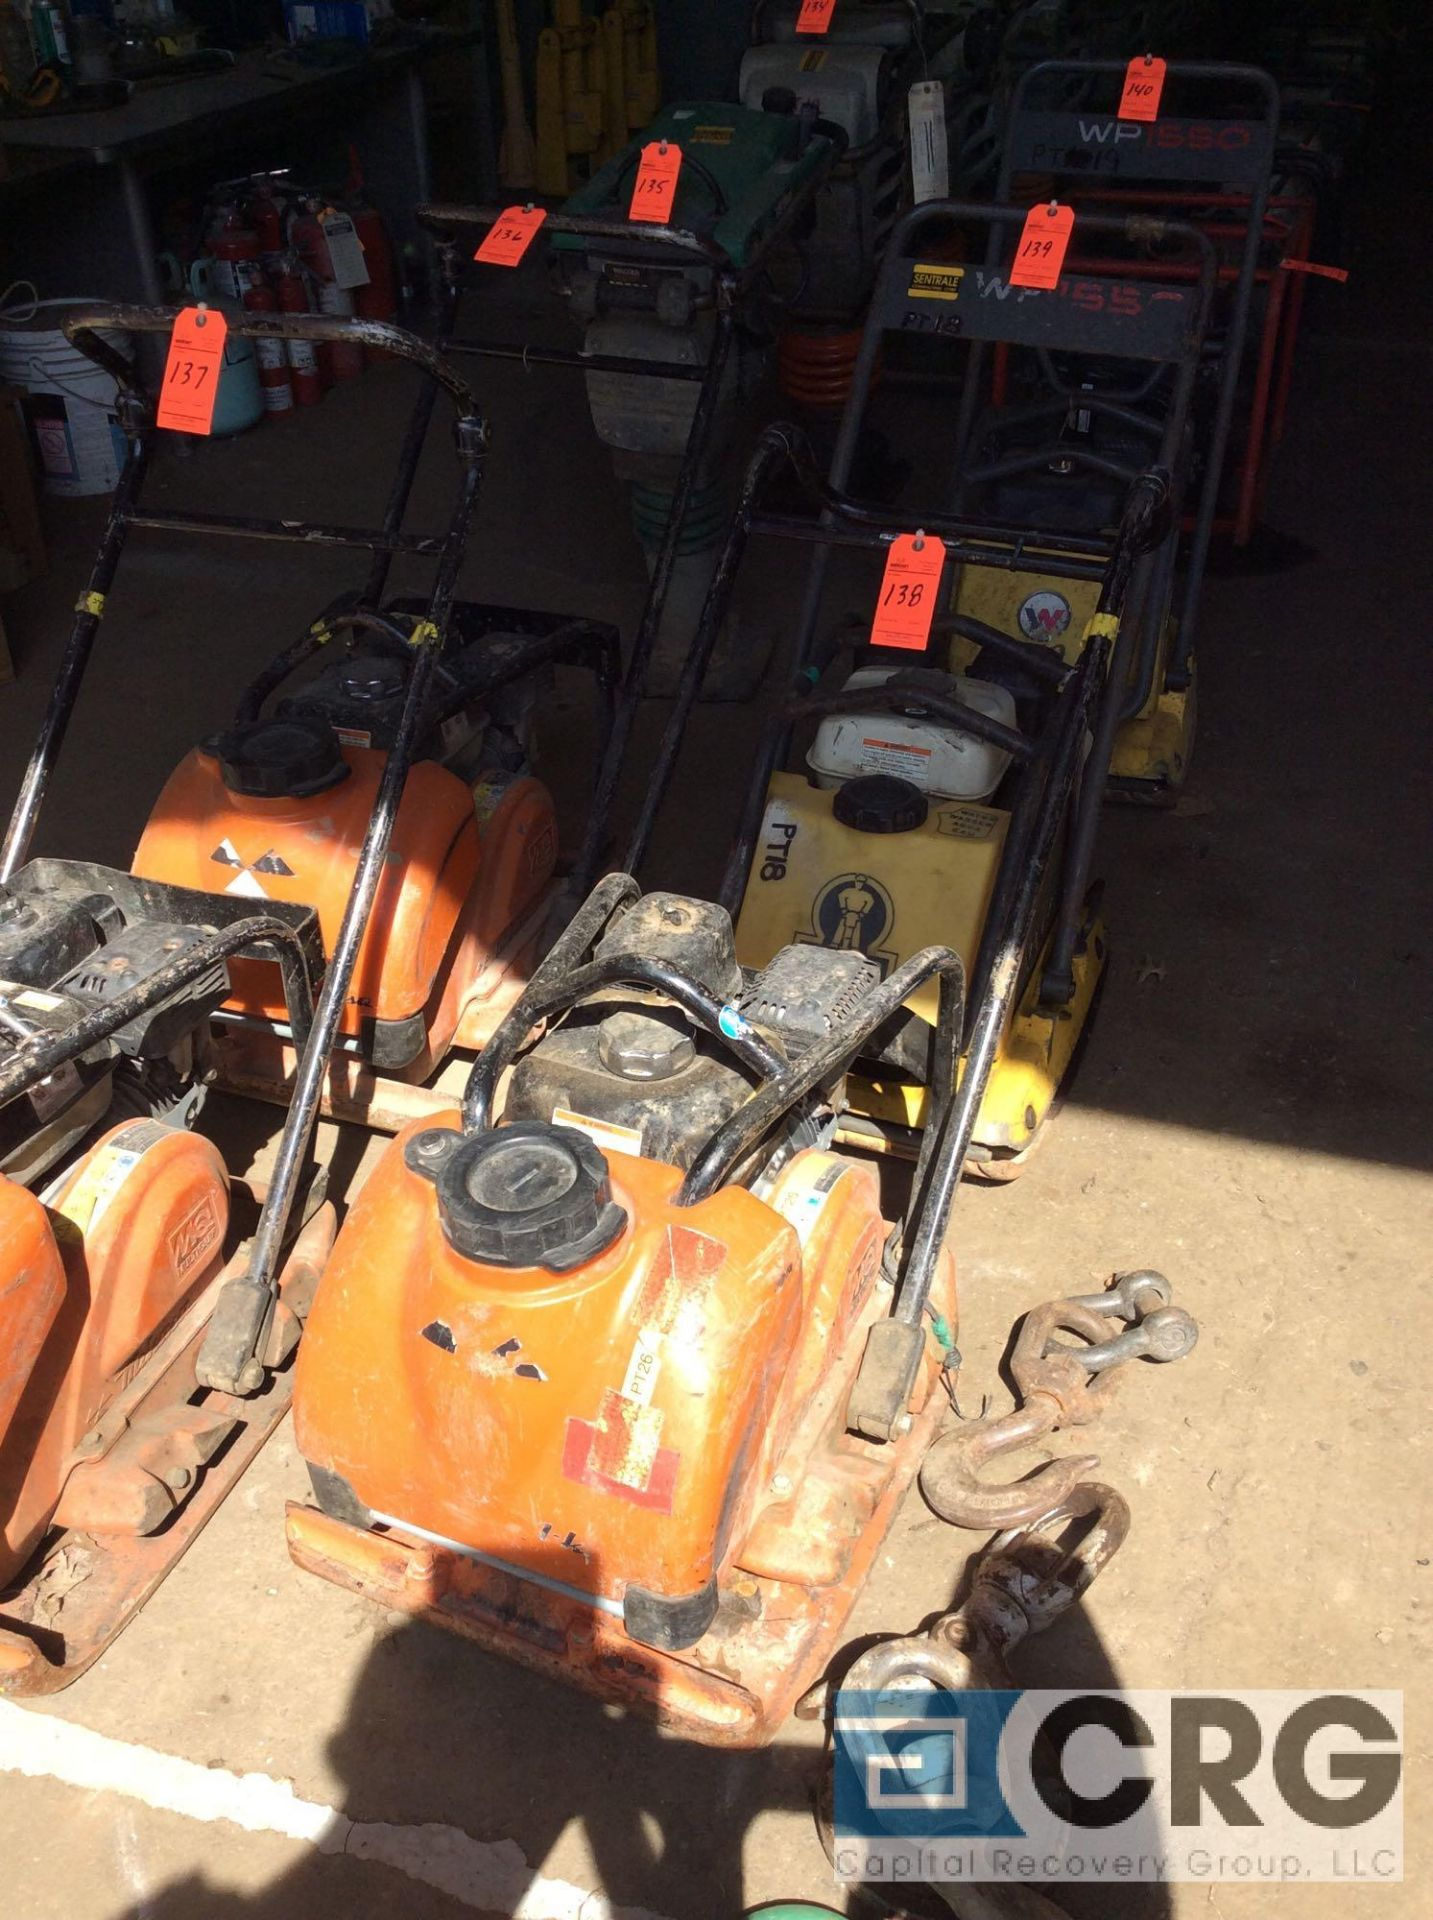 Lot 138 - MultiQuip MVC-88VTHW single direction plate compactor with water tank, Honda GX160 motor, 68 hours